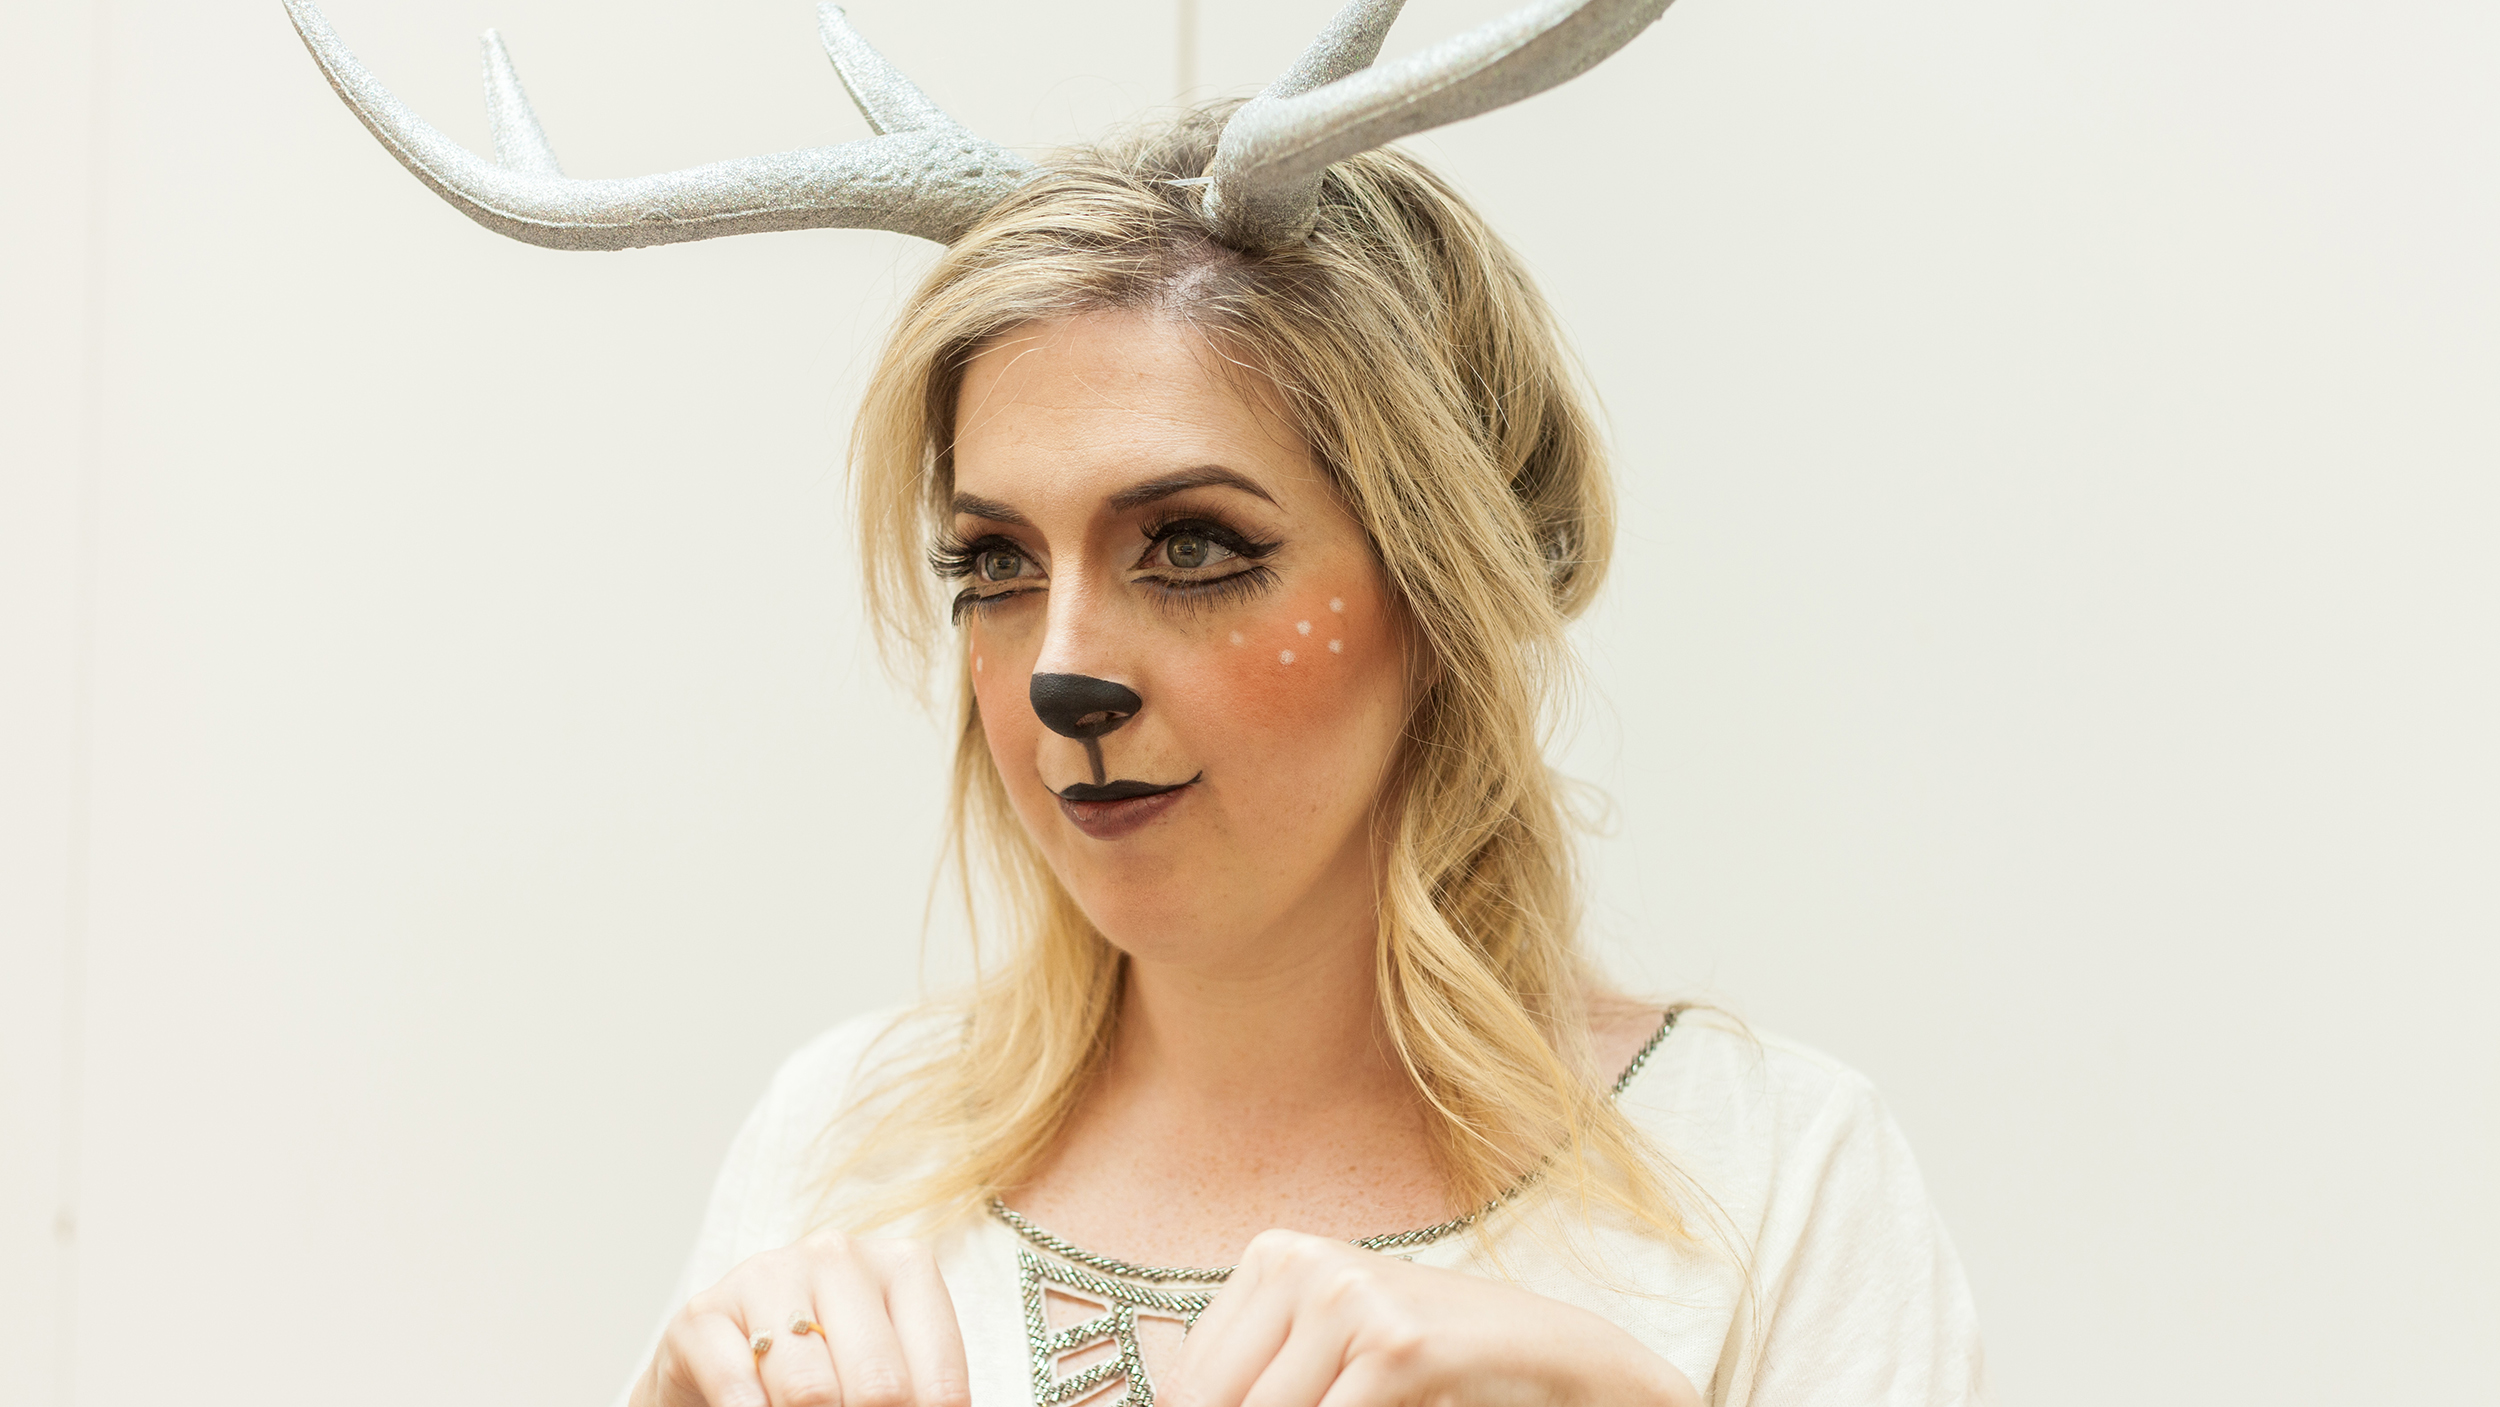 cute senior picture ideas for couples - Halloween makeup tutorial Try this easy deer costume